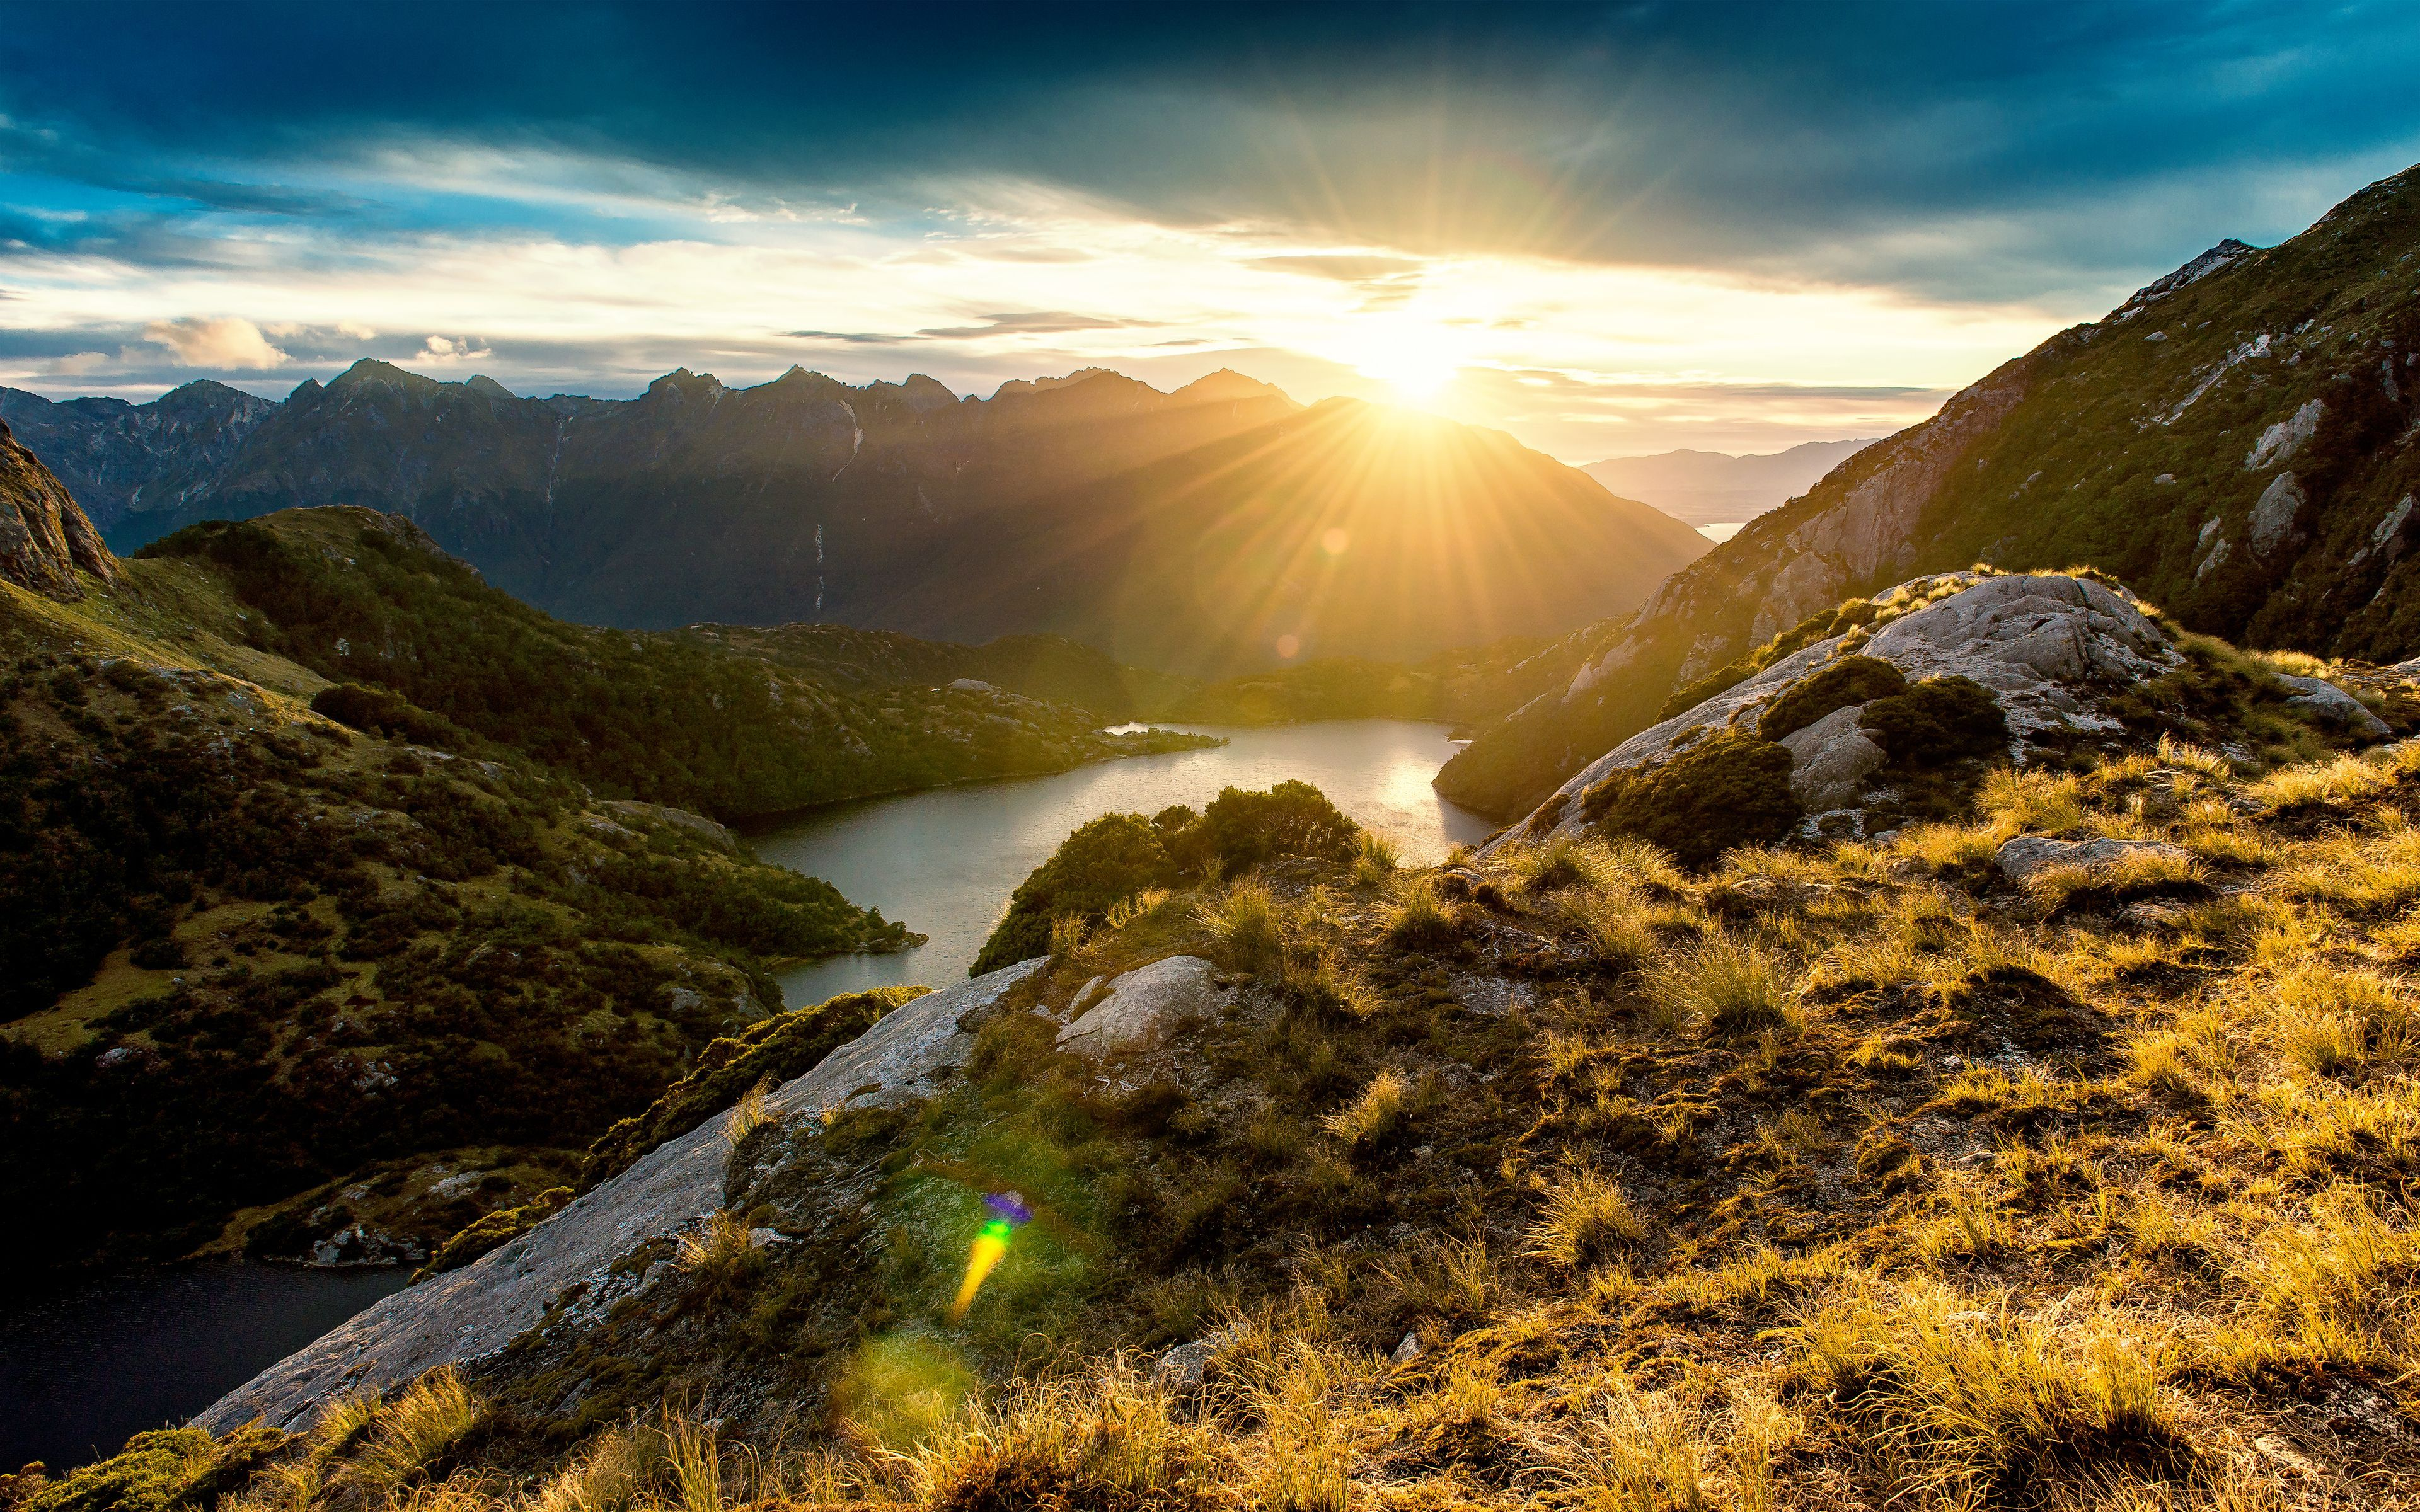 4k New Zealand Wallpapers Top Free 4k New Zealand Backgrounds Wallpaperaccess